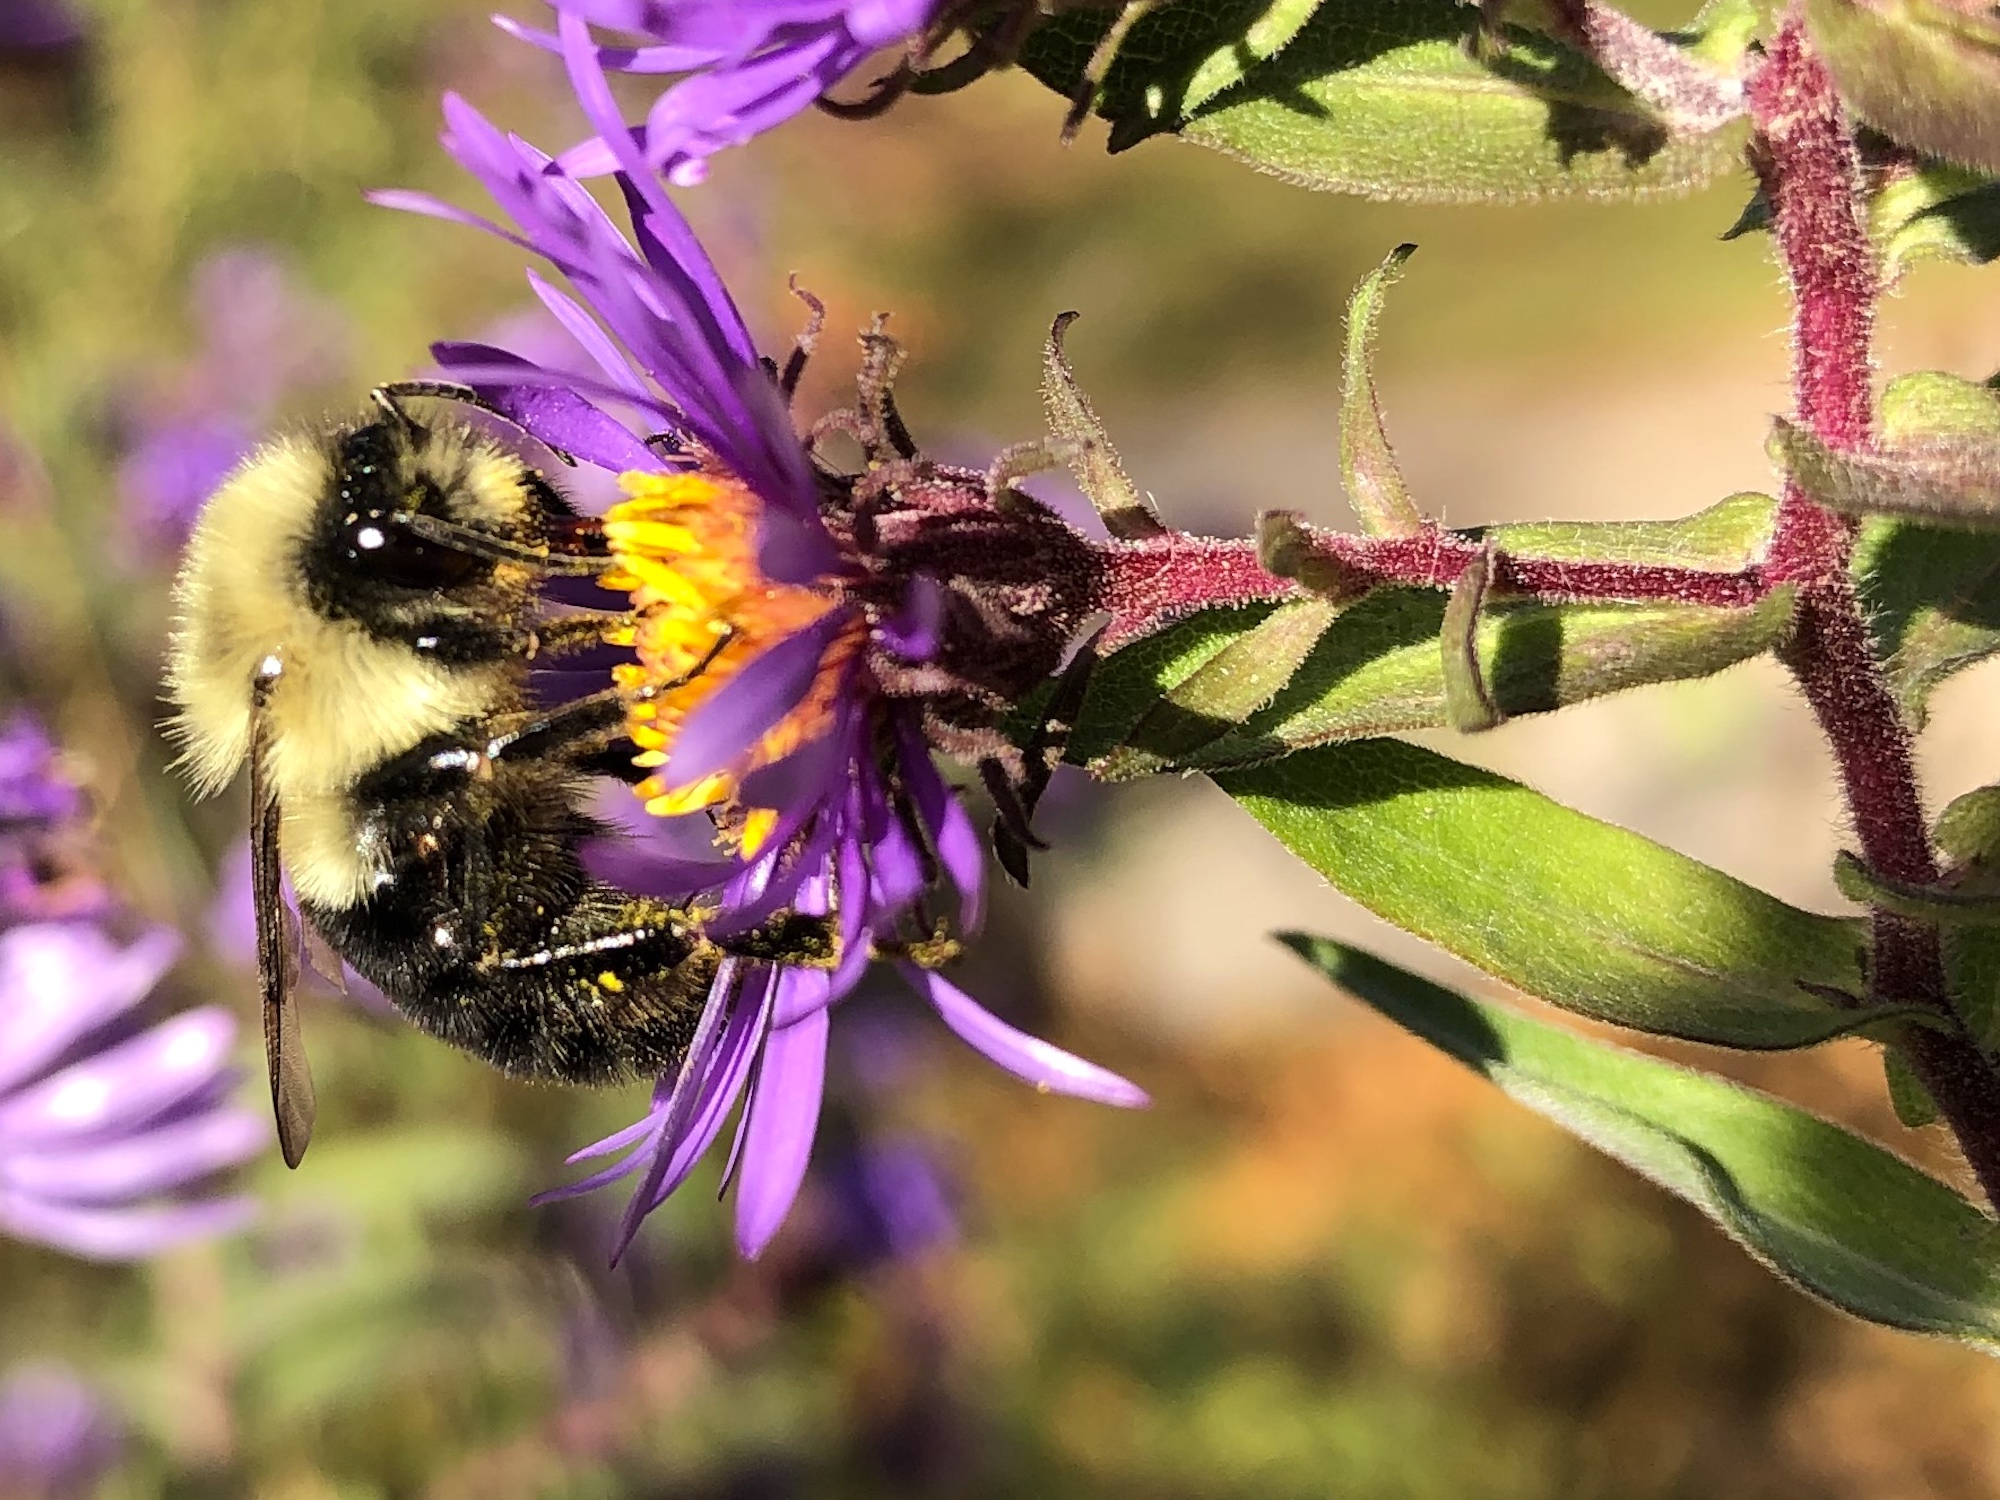 Bumblebee on aster on October 21, 2020.